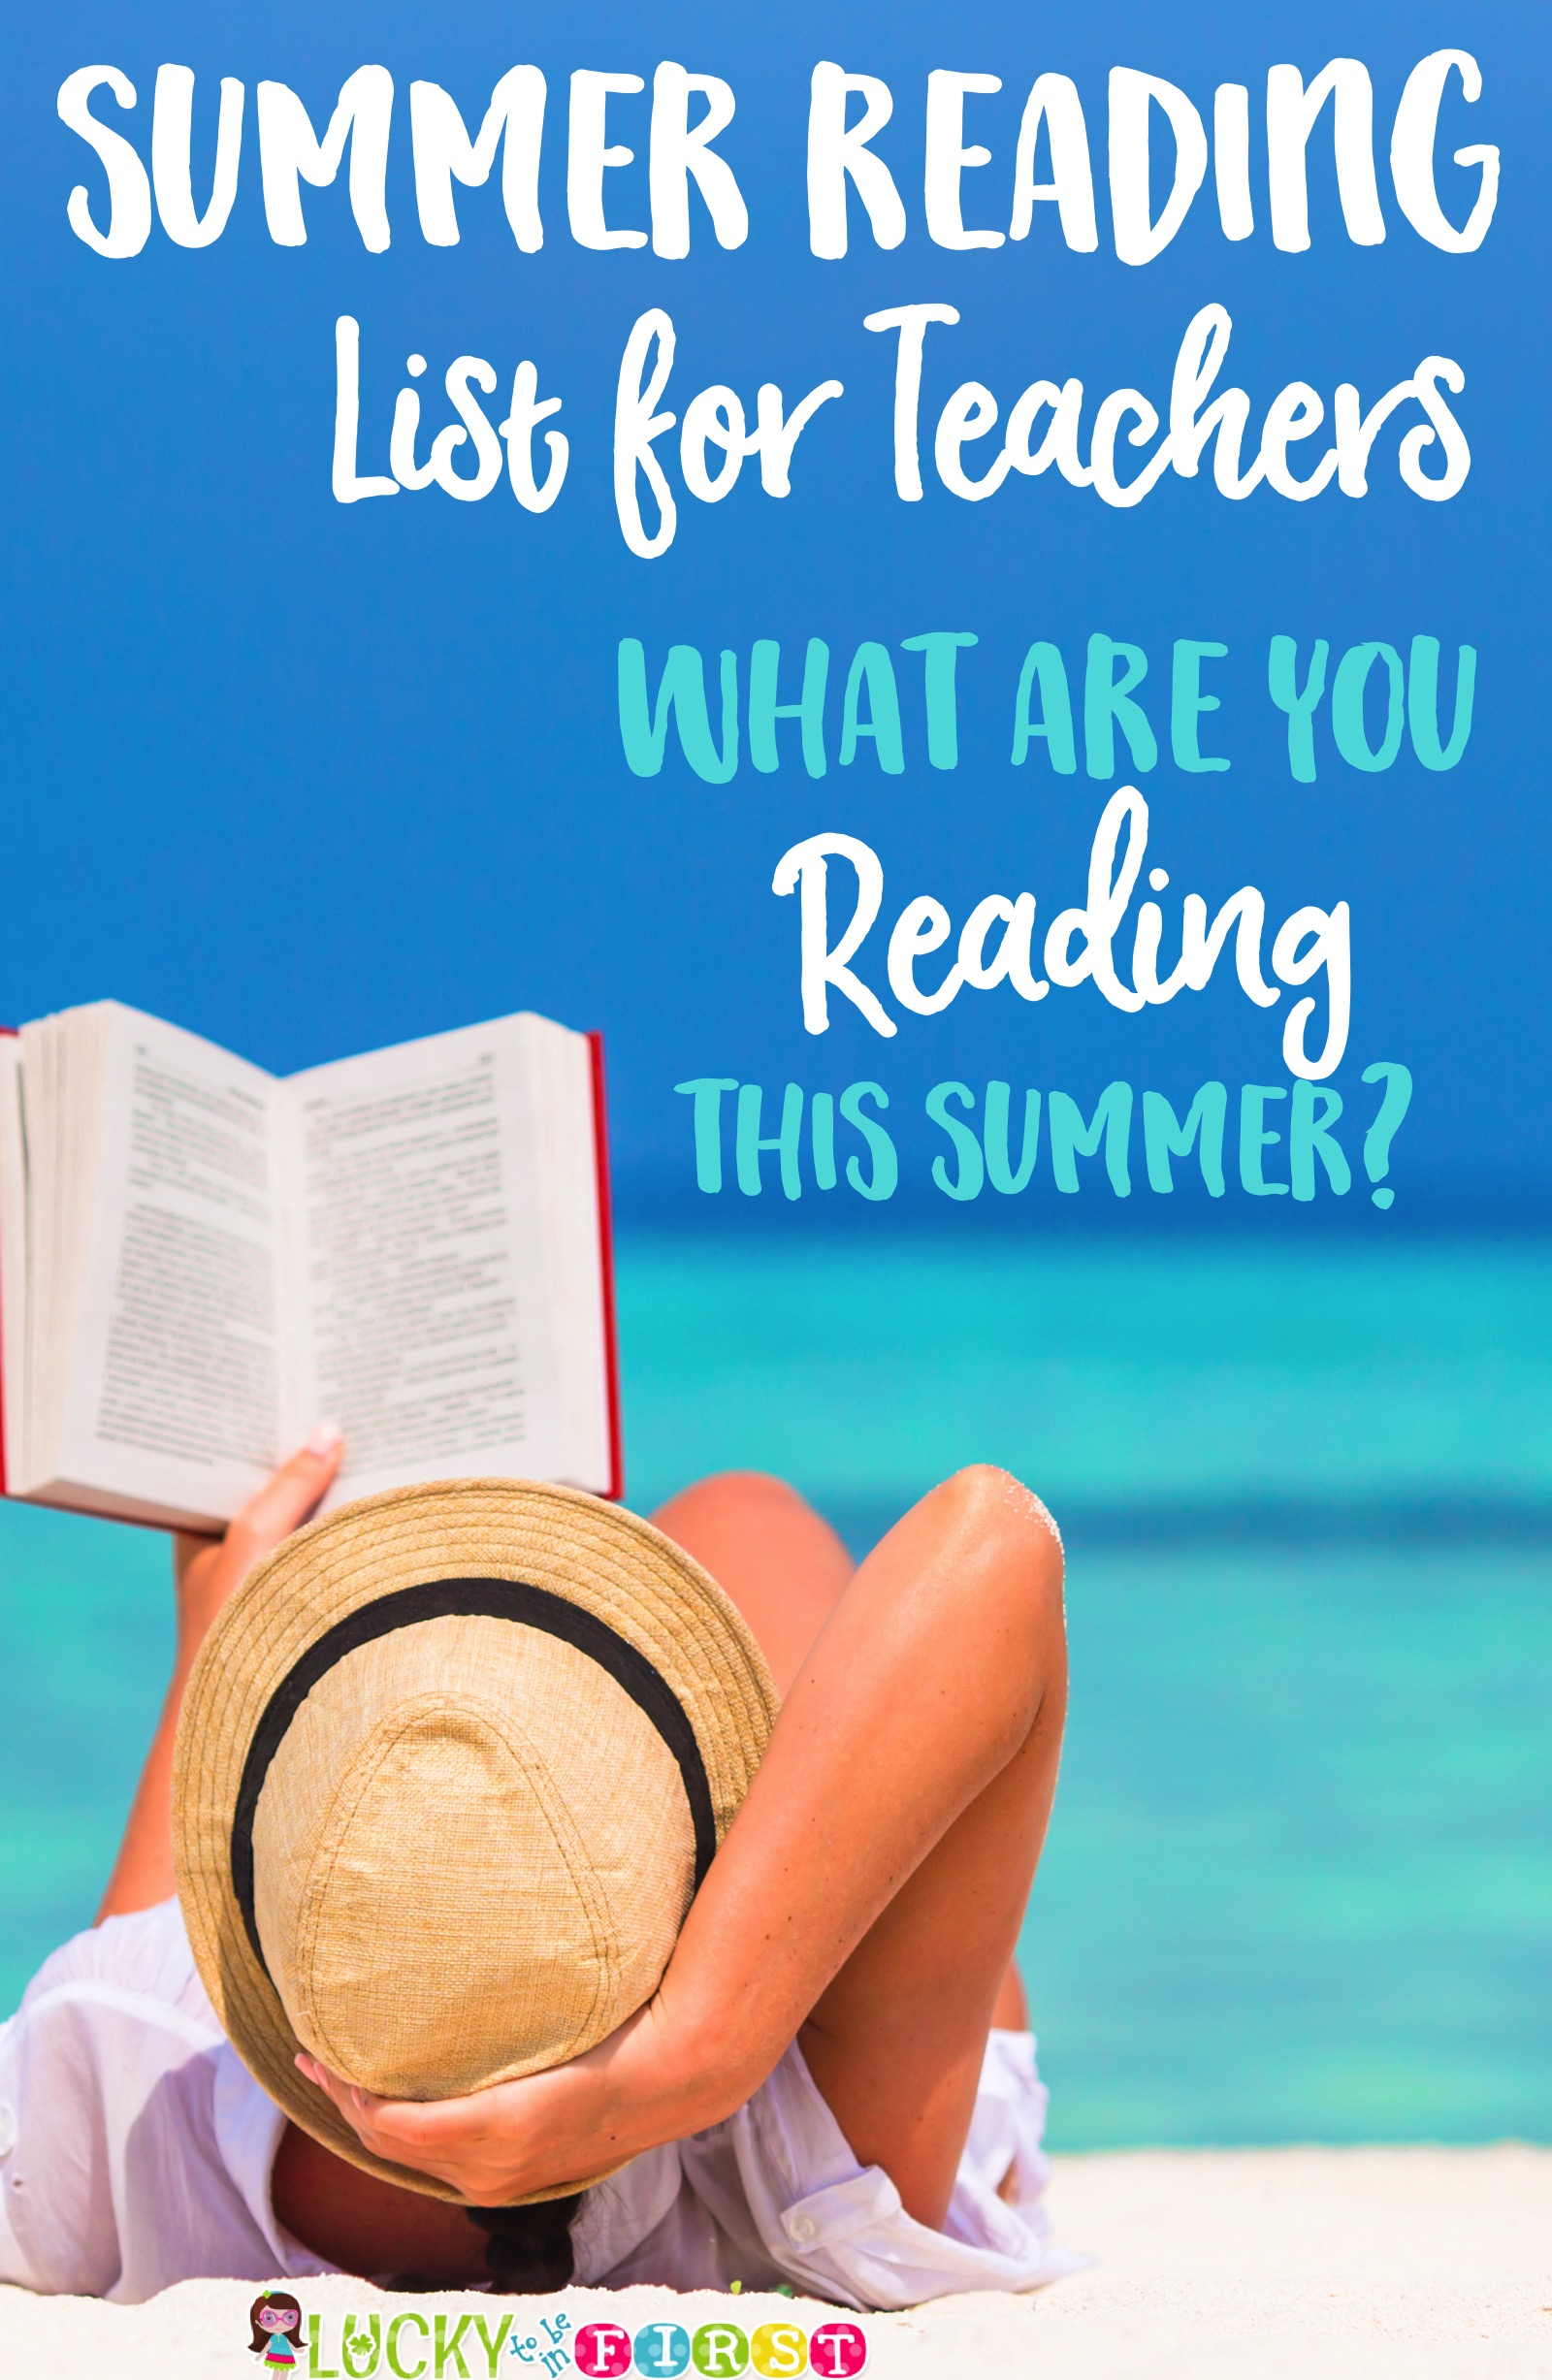 What are you reading this summer? Get lost in a book with this list of suggestions!